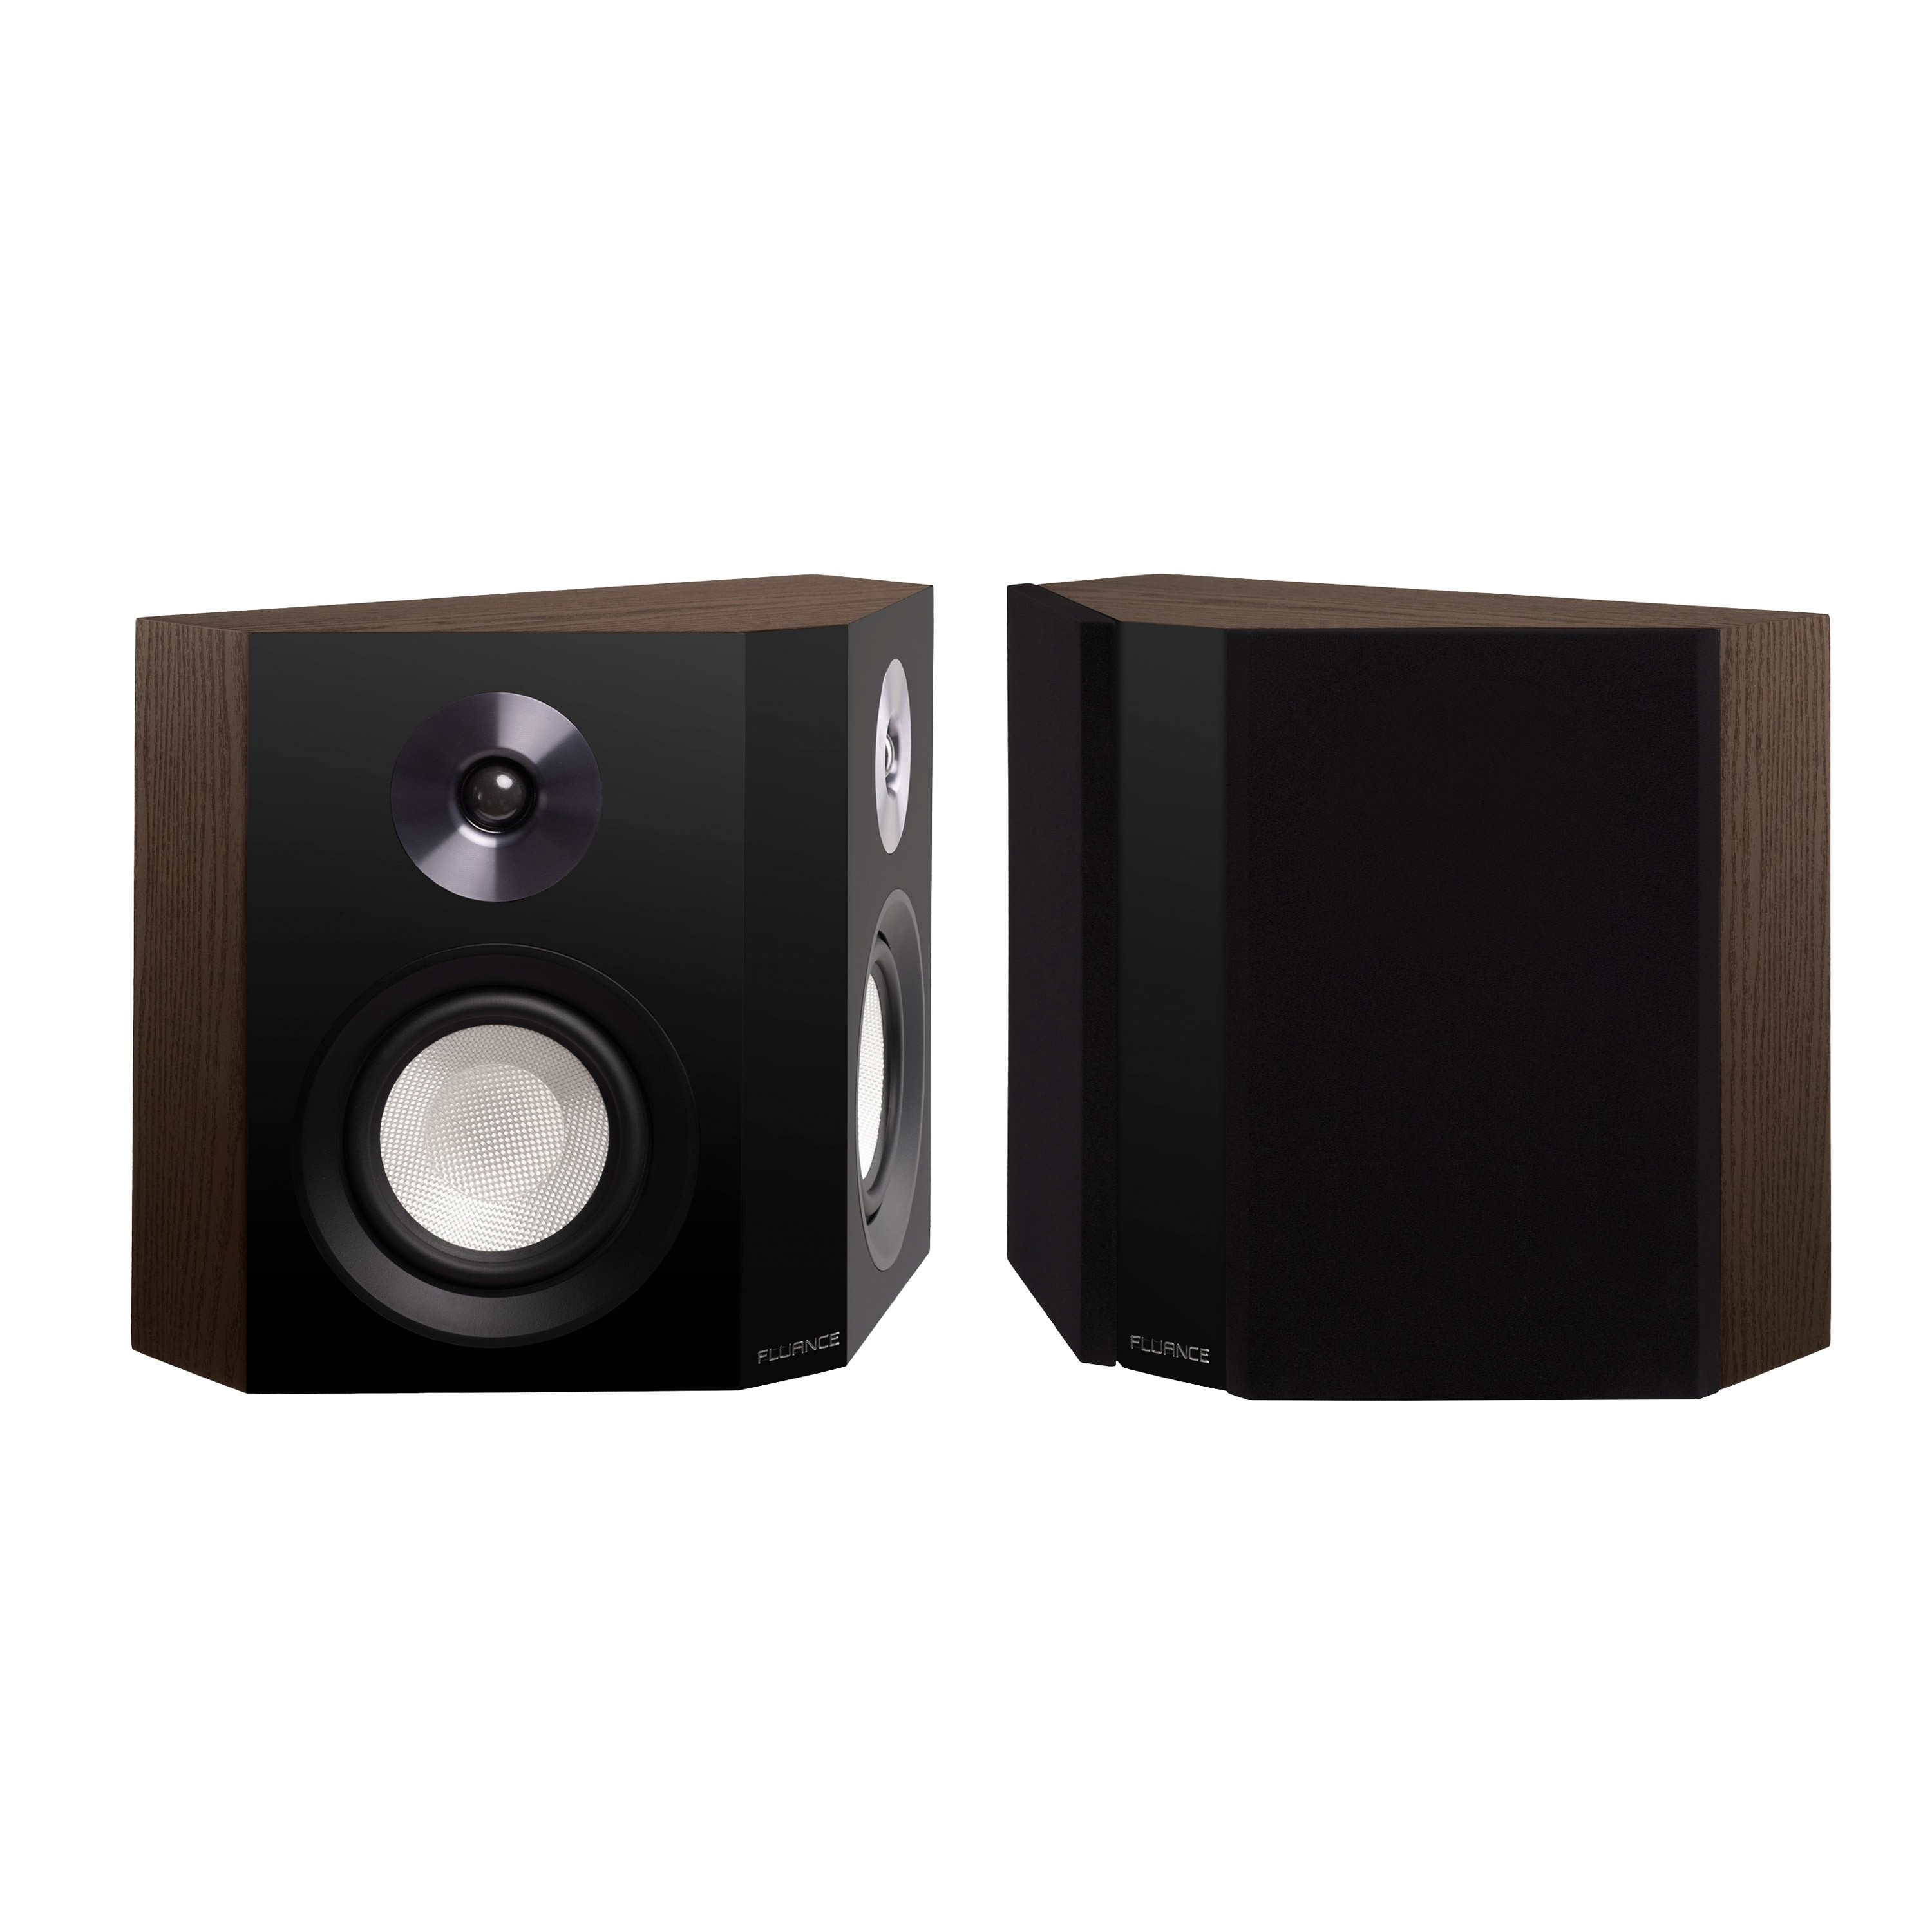 XLBPW Bipolar Surround Sound Speakers